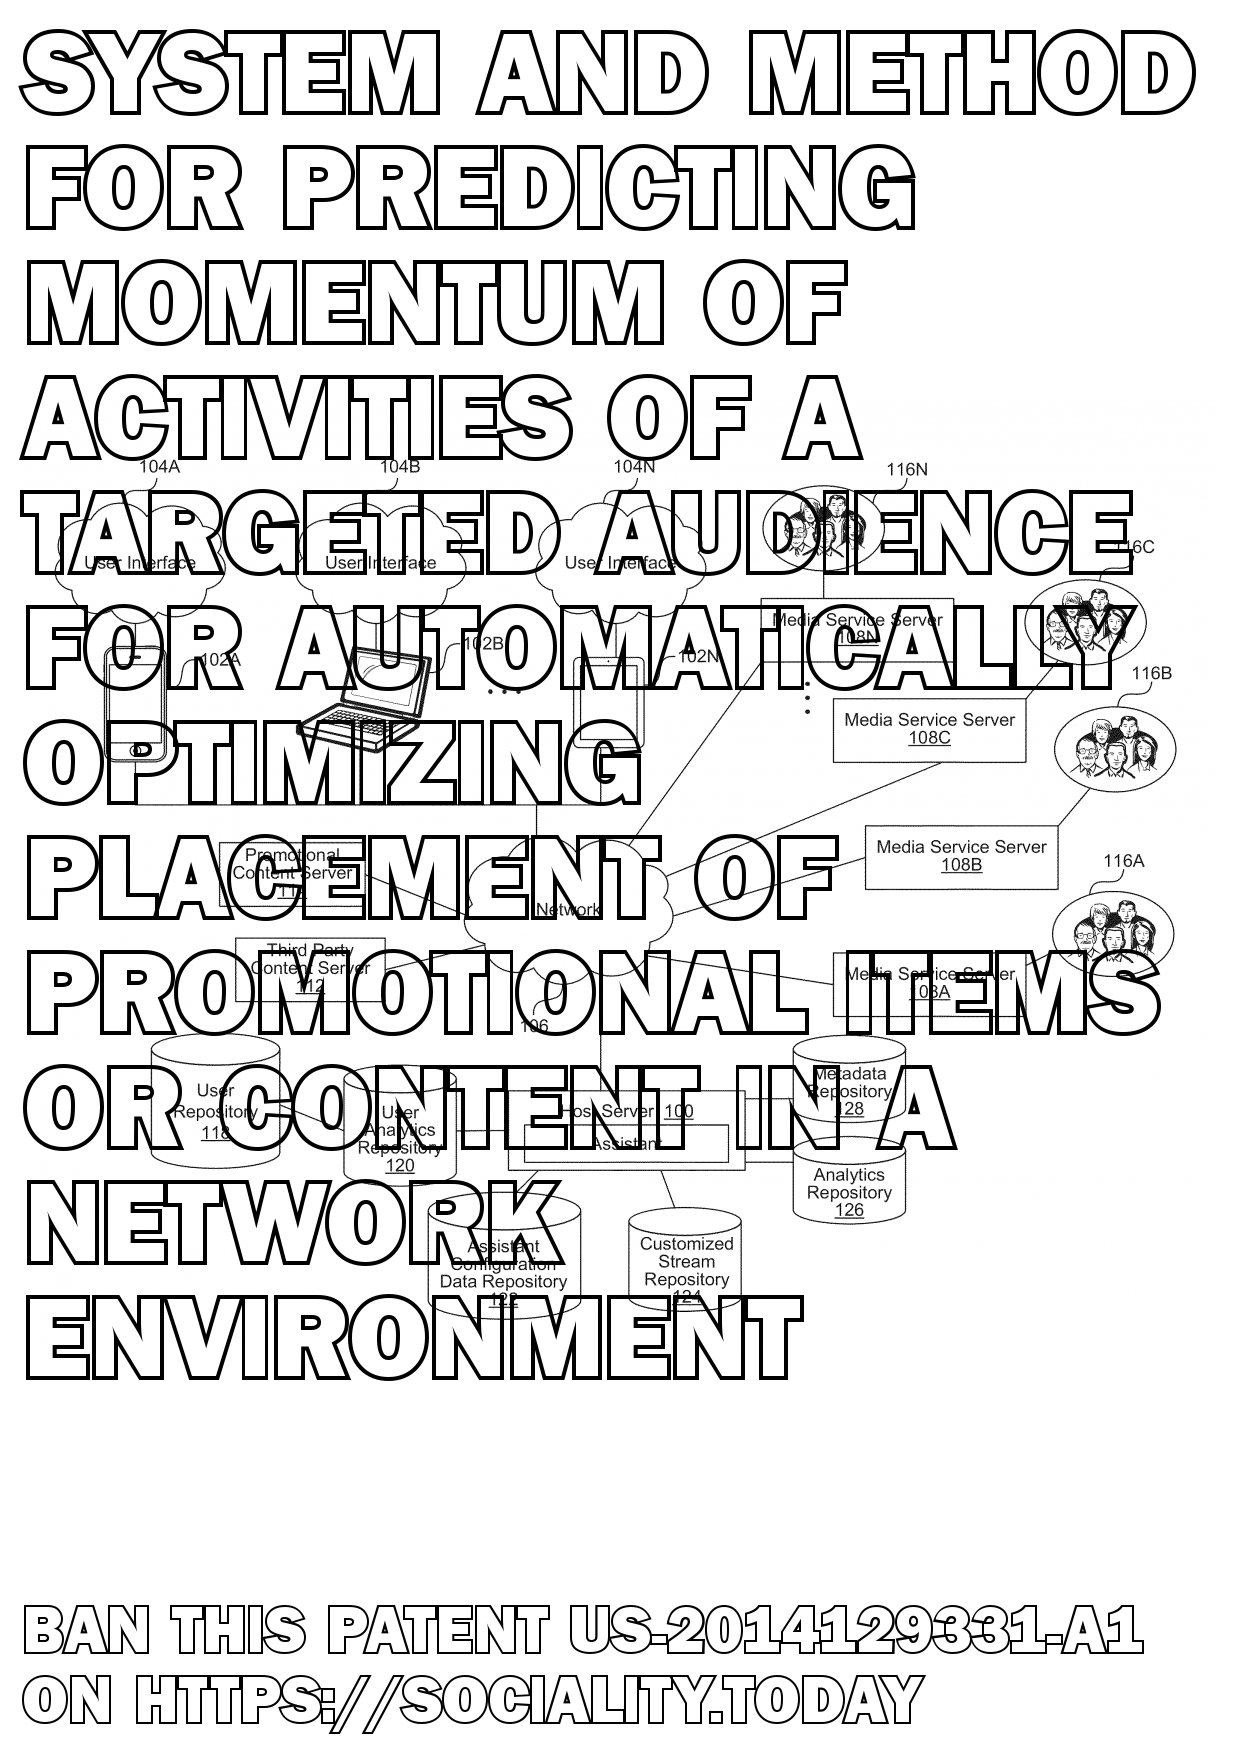 System and method for predicting momentum of activities of a targeted audience for automatically optimizing placement of promotional items or content in a network environment  - US-2014129331-A1